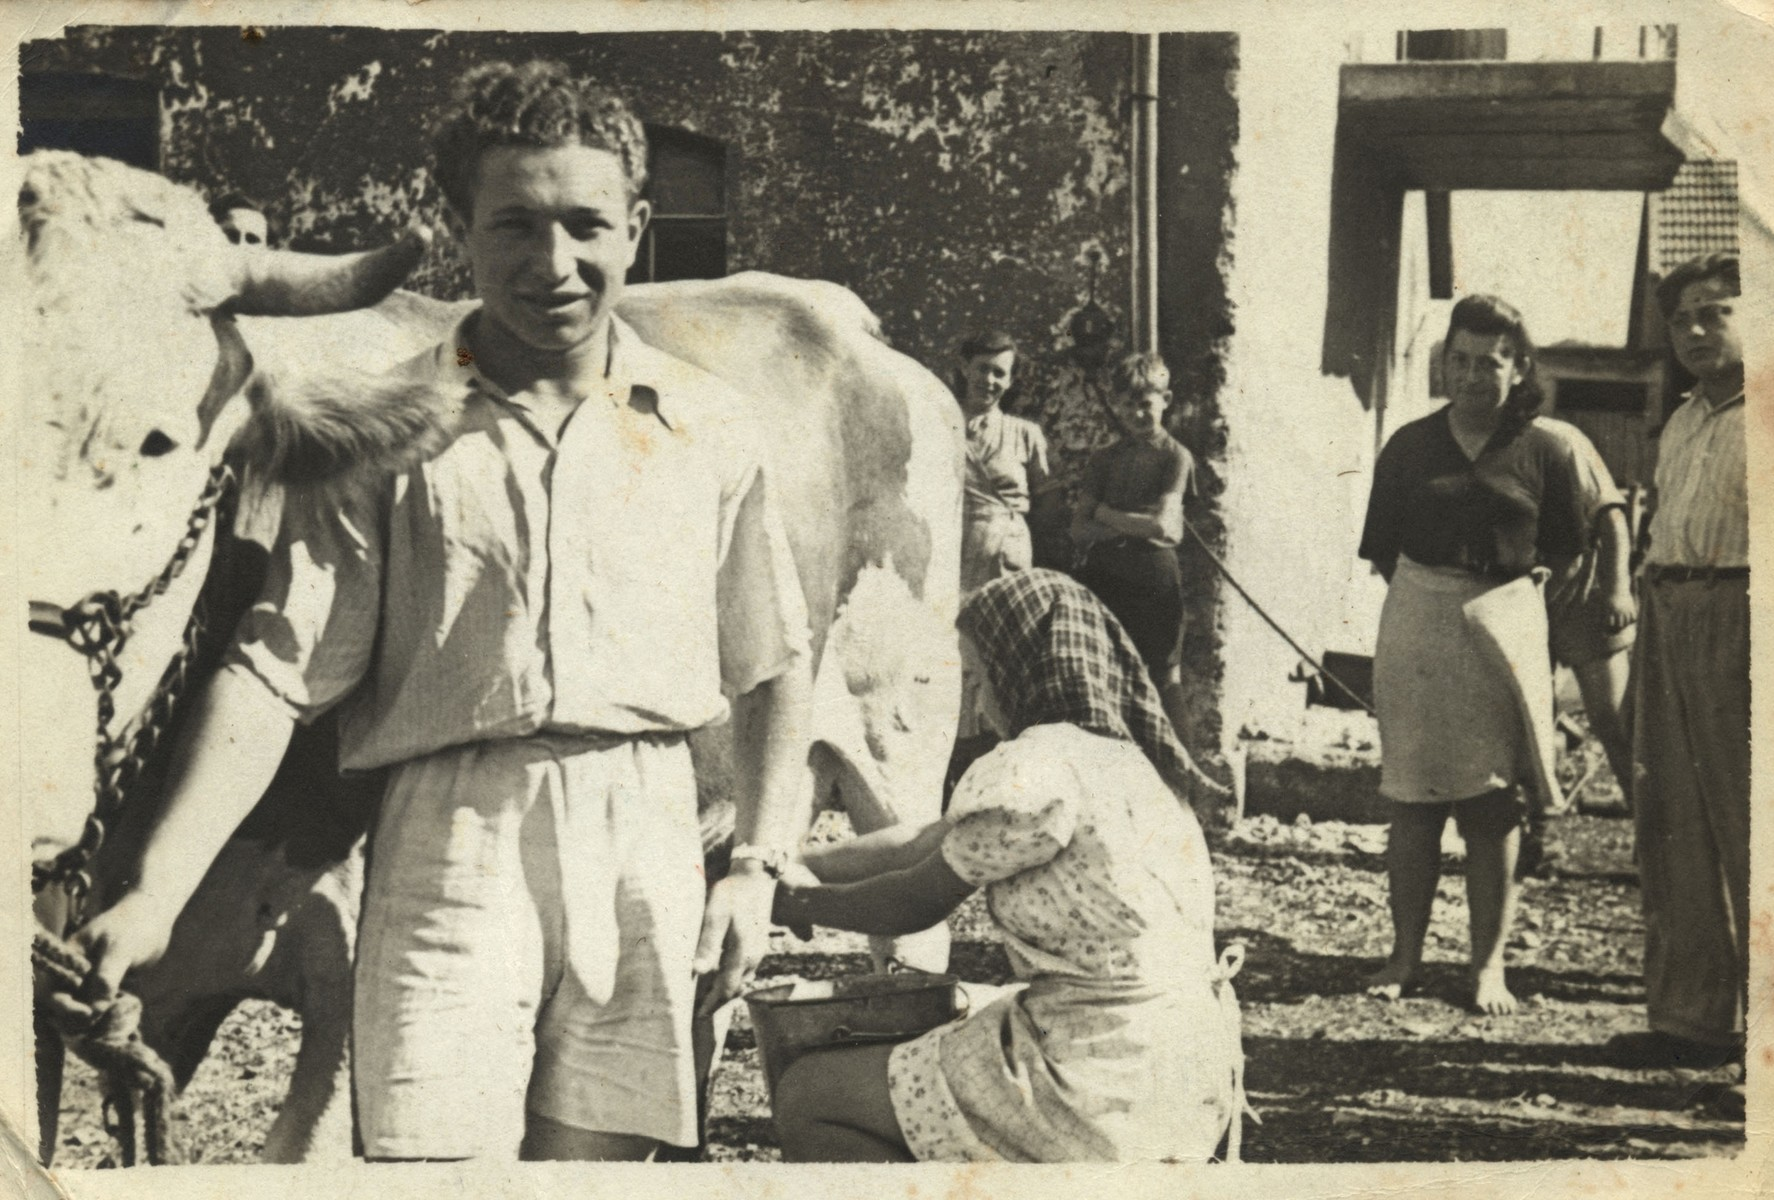 A young Jewish man holds onto a cow while a woman milks it on a kibbutz hachshara in Germany.   Pictured standing second from right  may be the donor Juta Bergman.